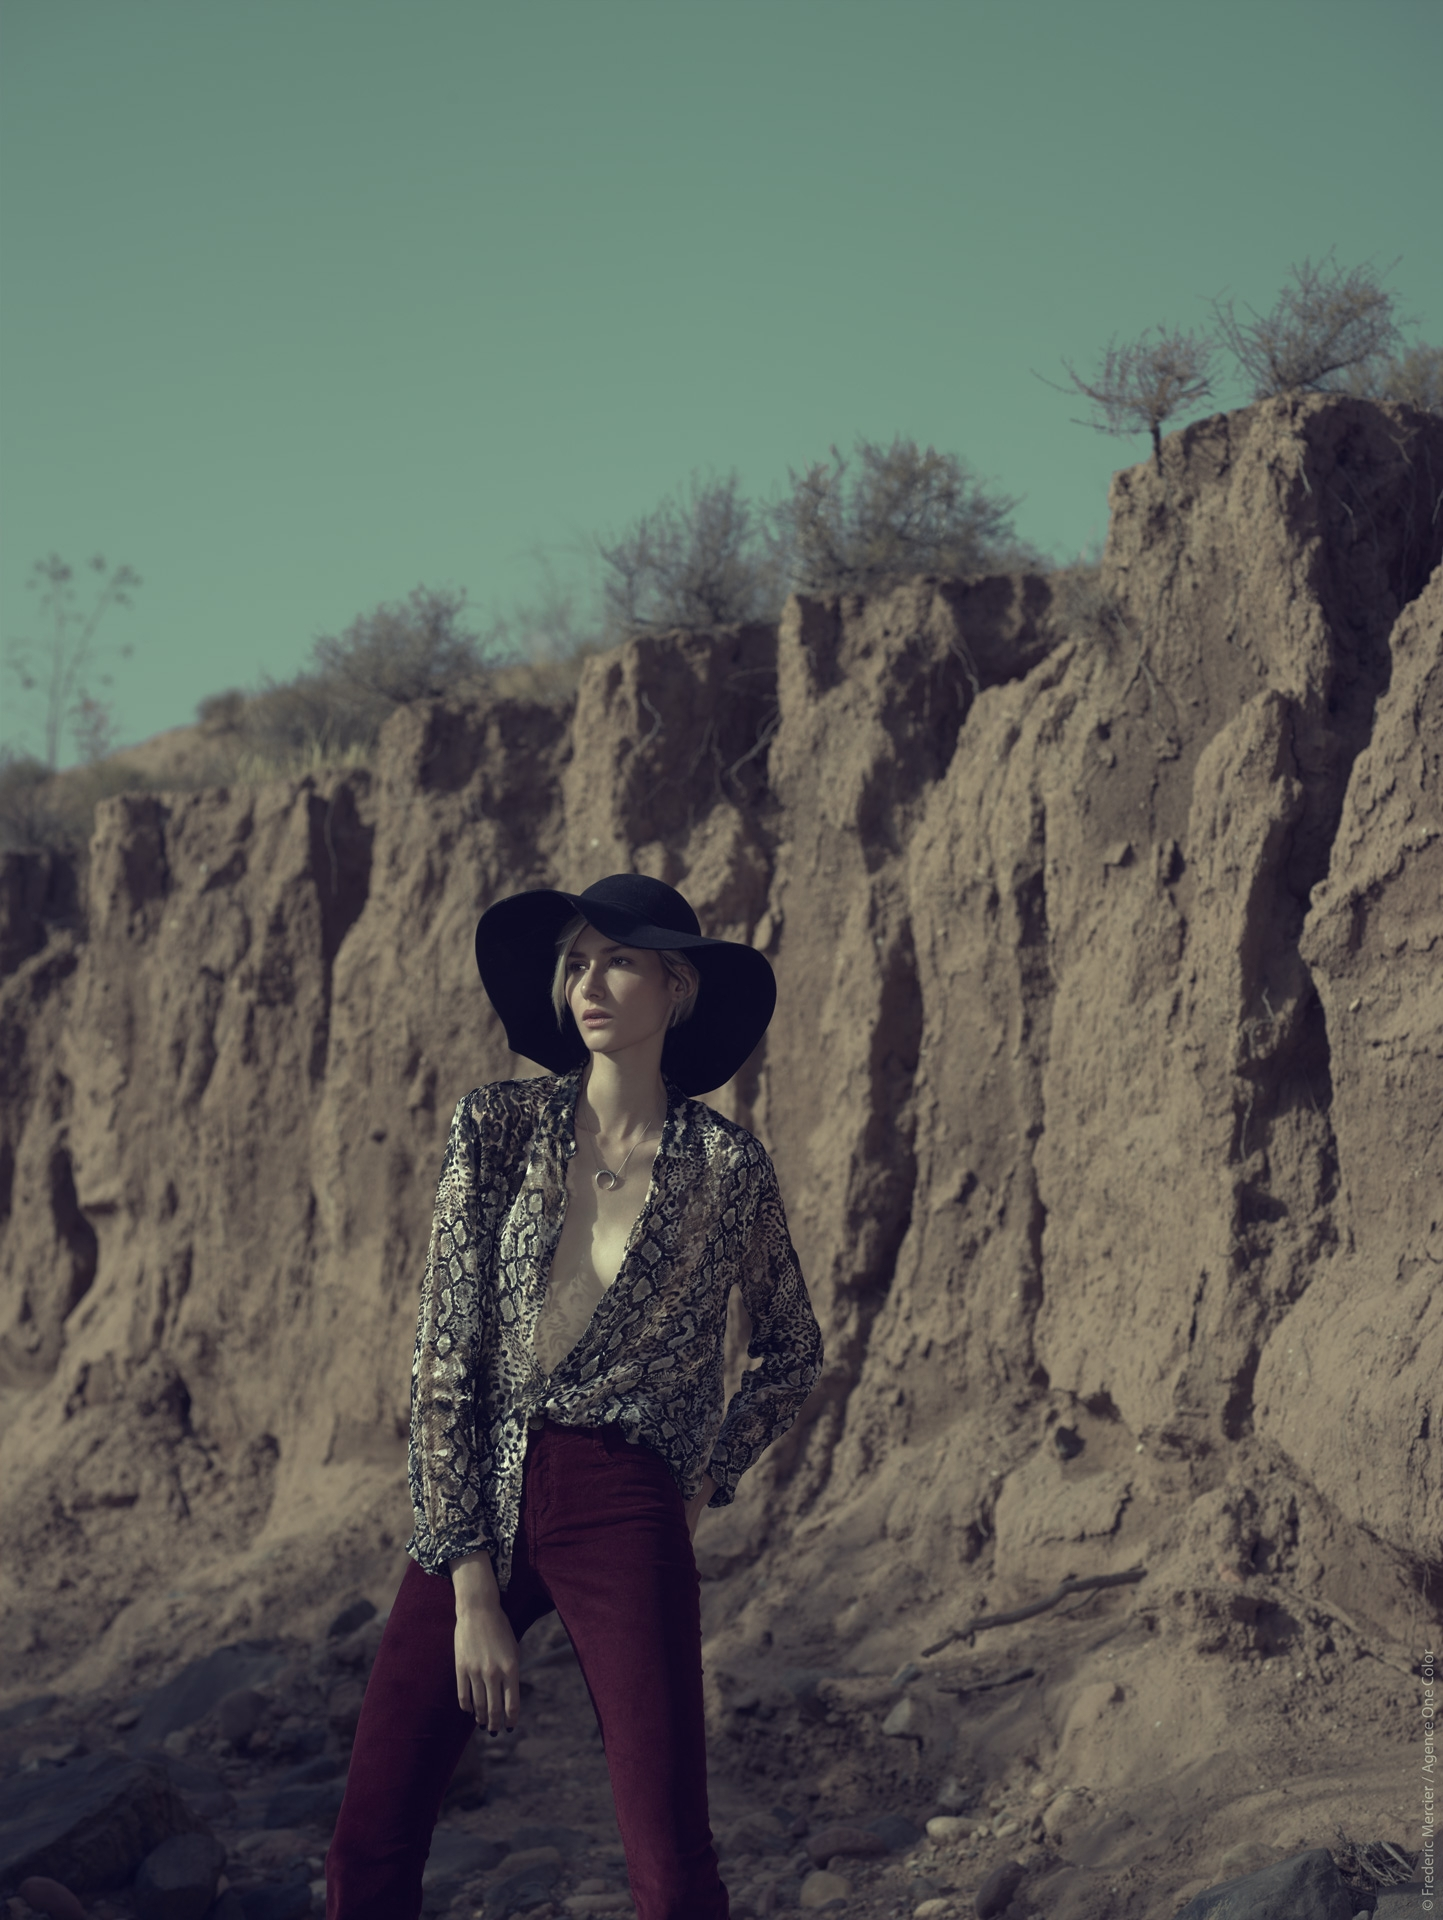 desert american wild lifestyle the kooples maje frederic mercier photographer one color